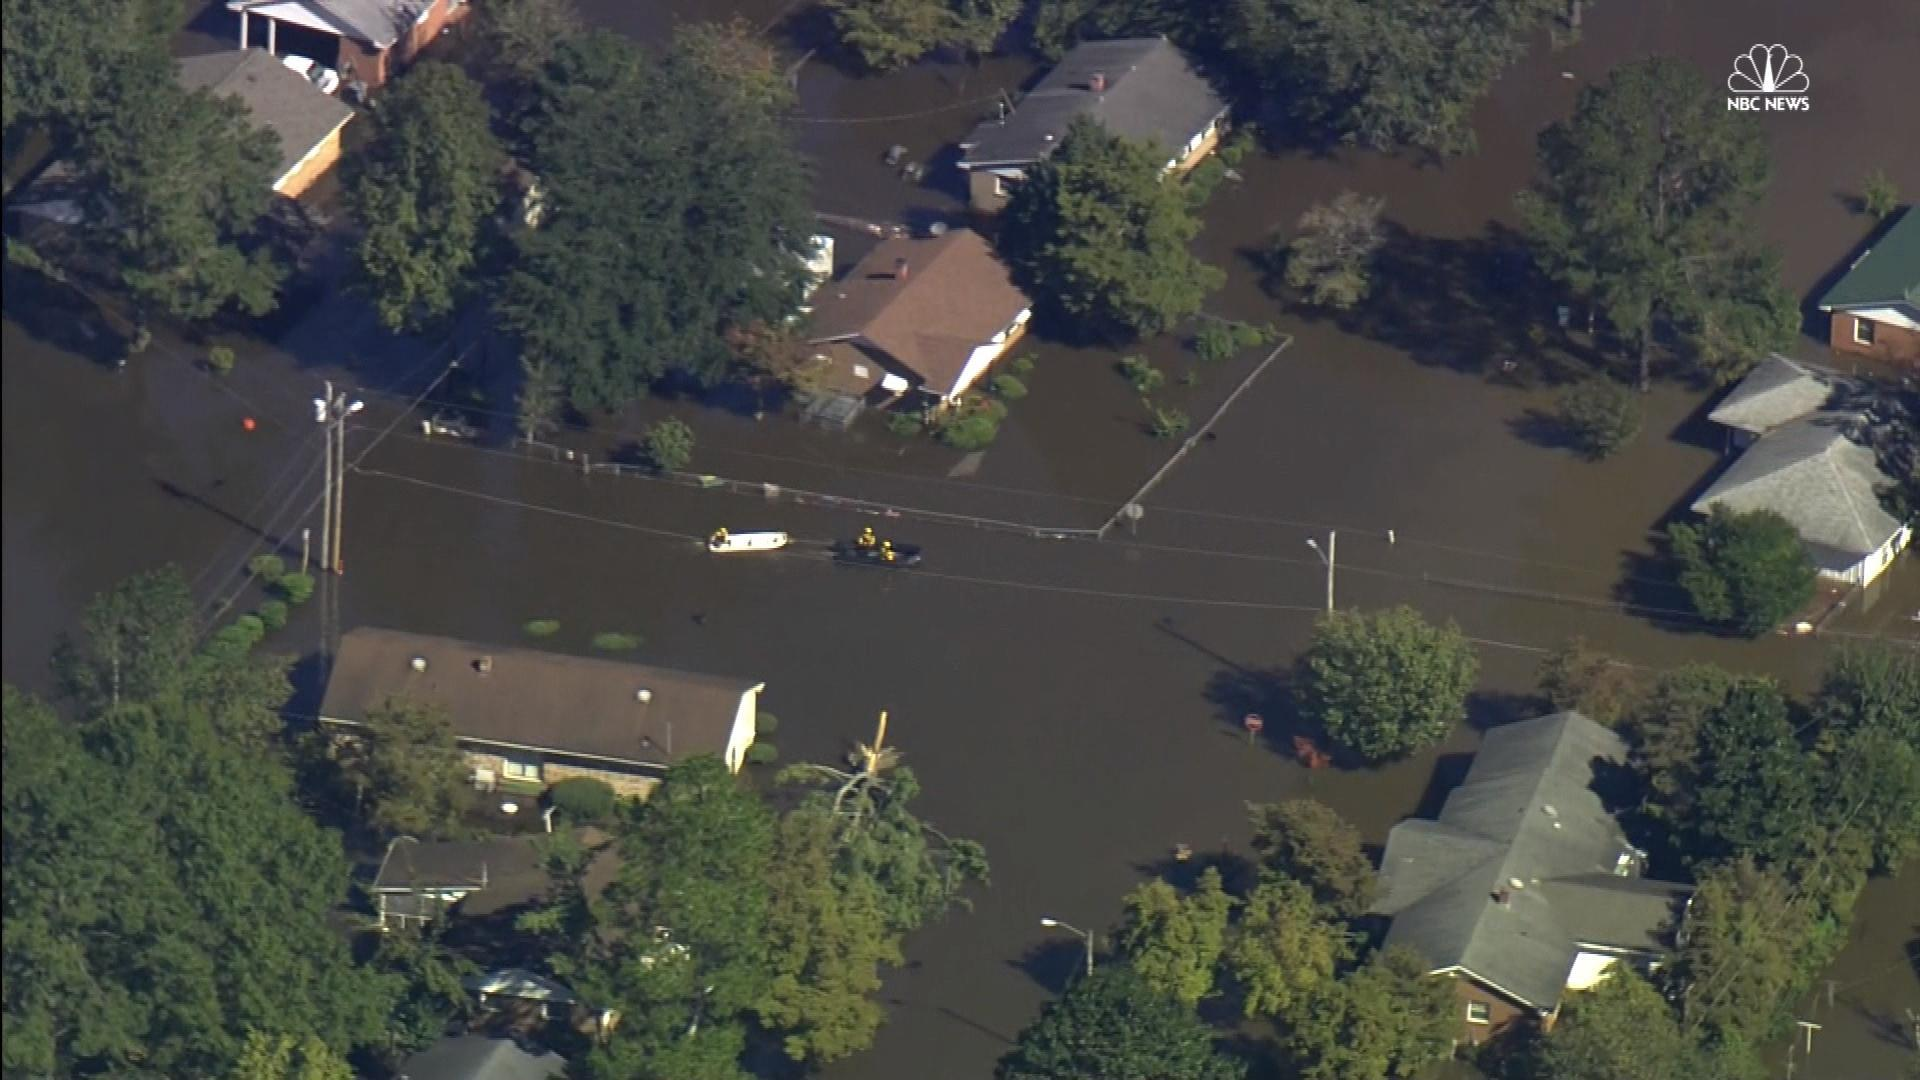 Aerial Footage Shows Extensive North Carolina Flooding